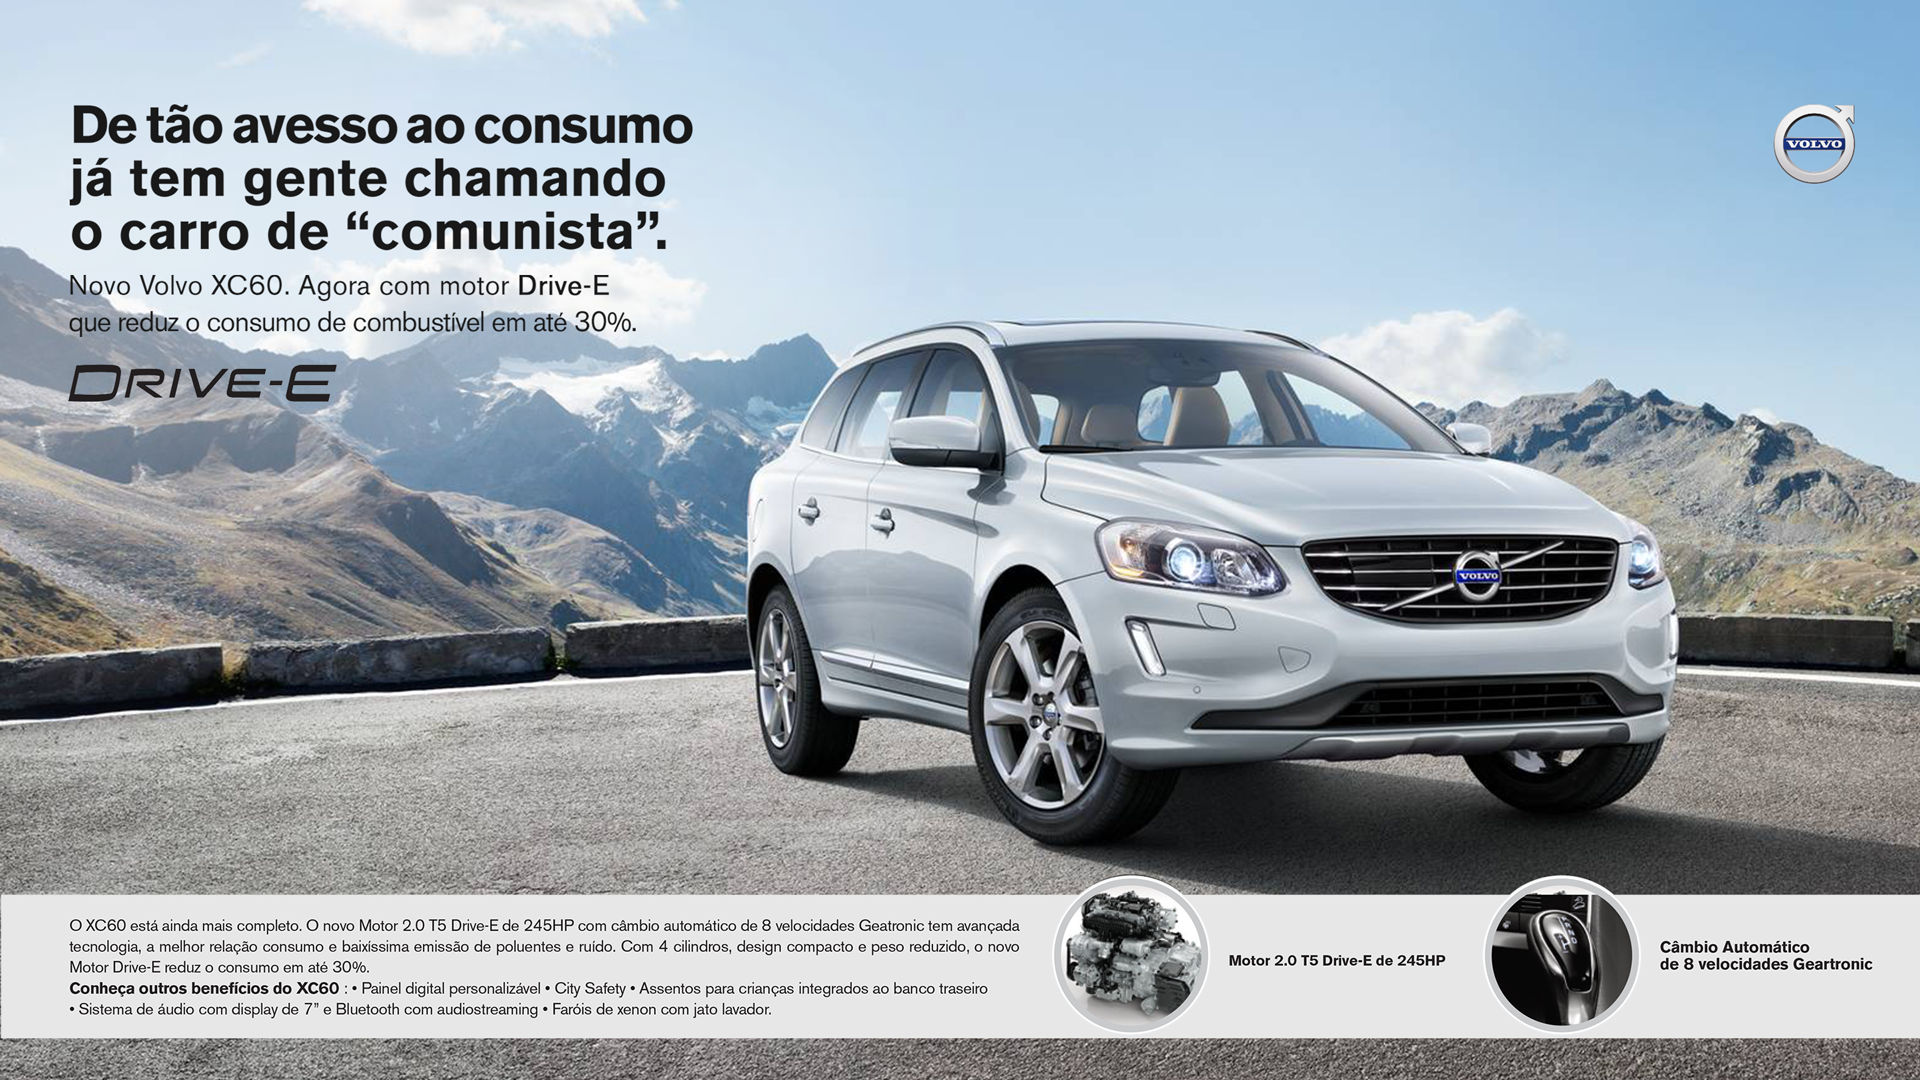 Print_Volvo2-1920-1080.png